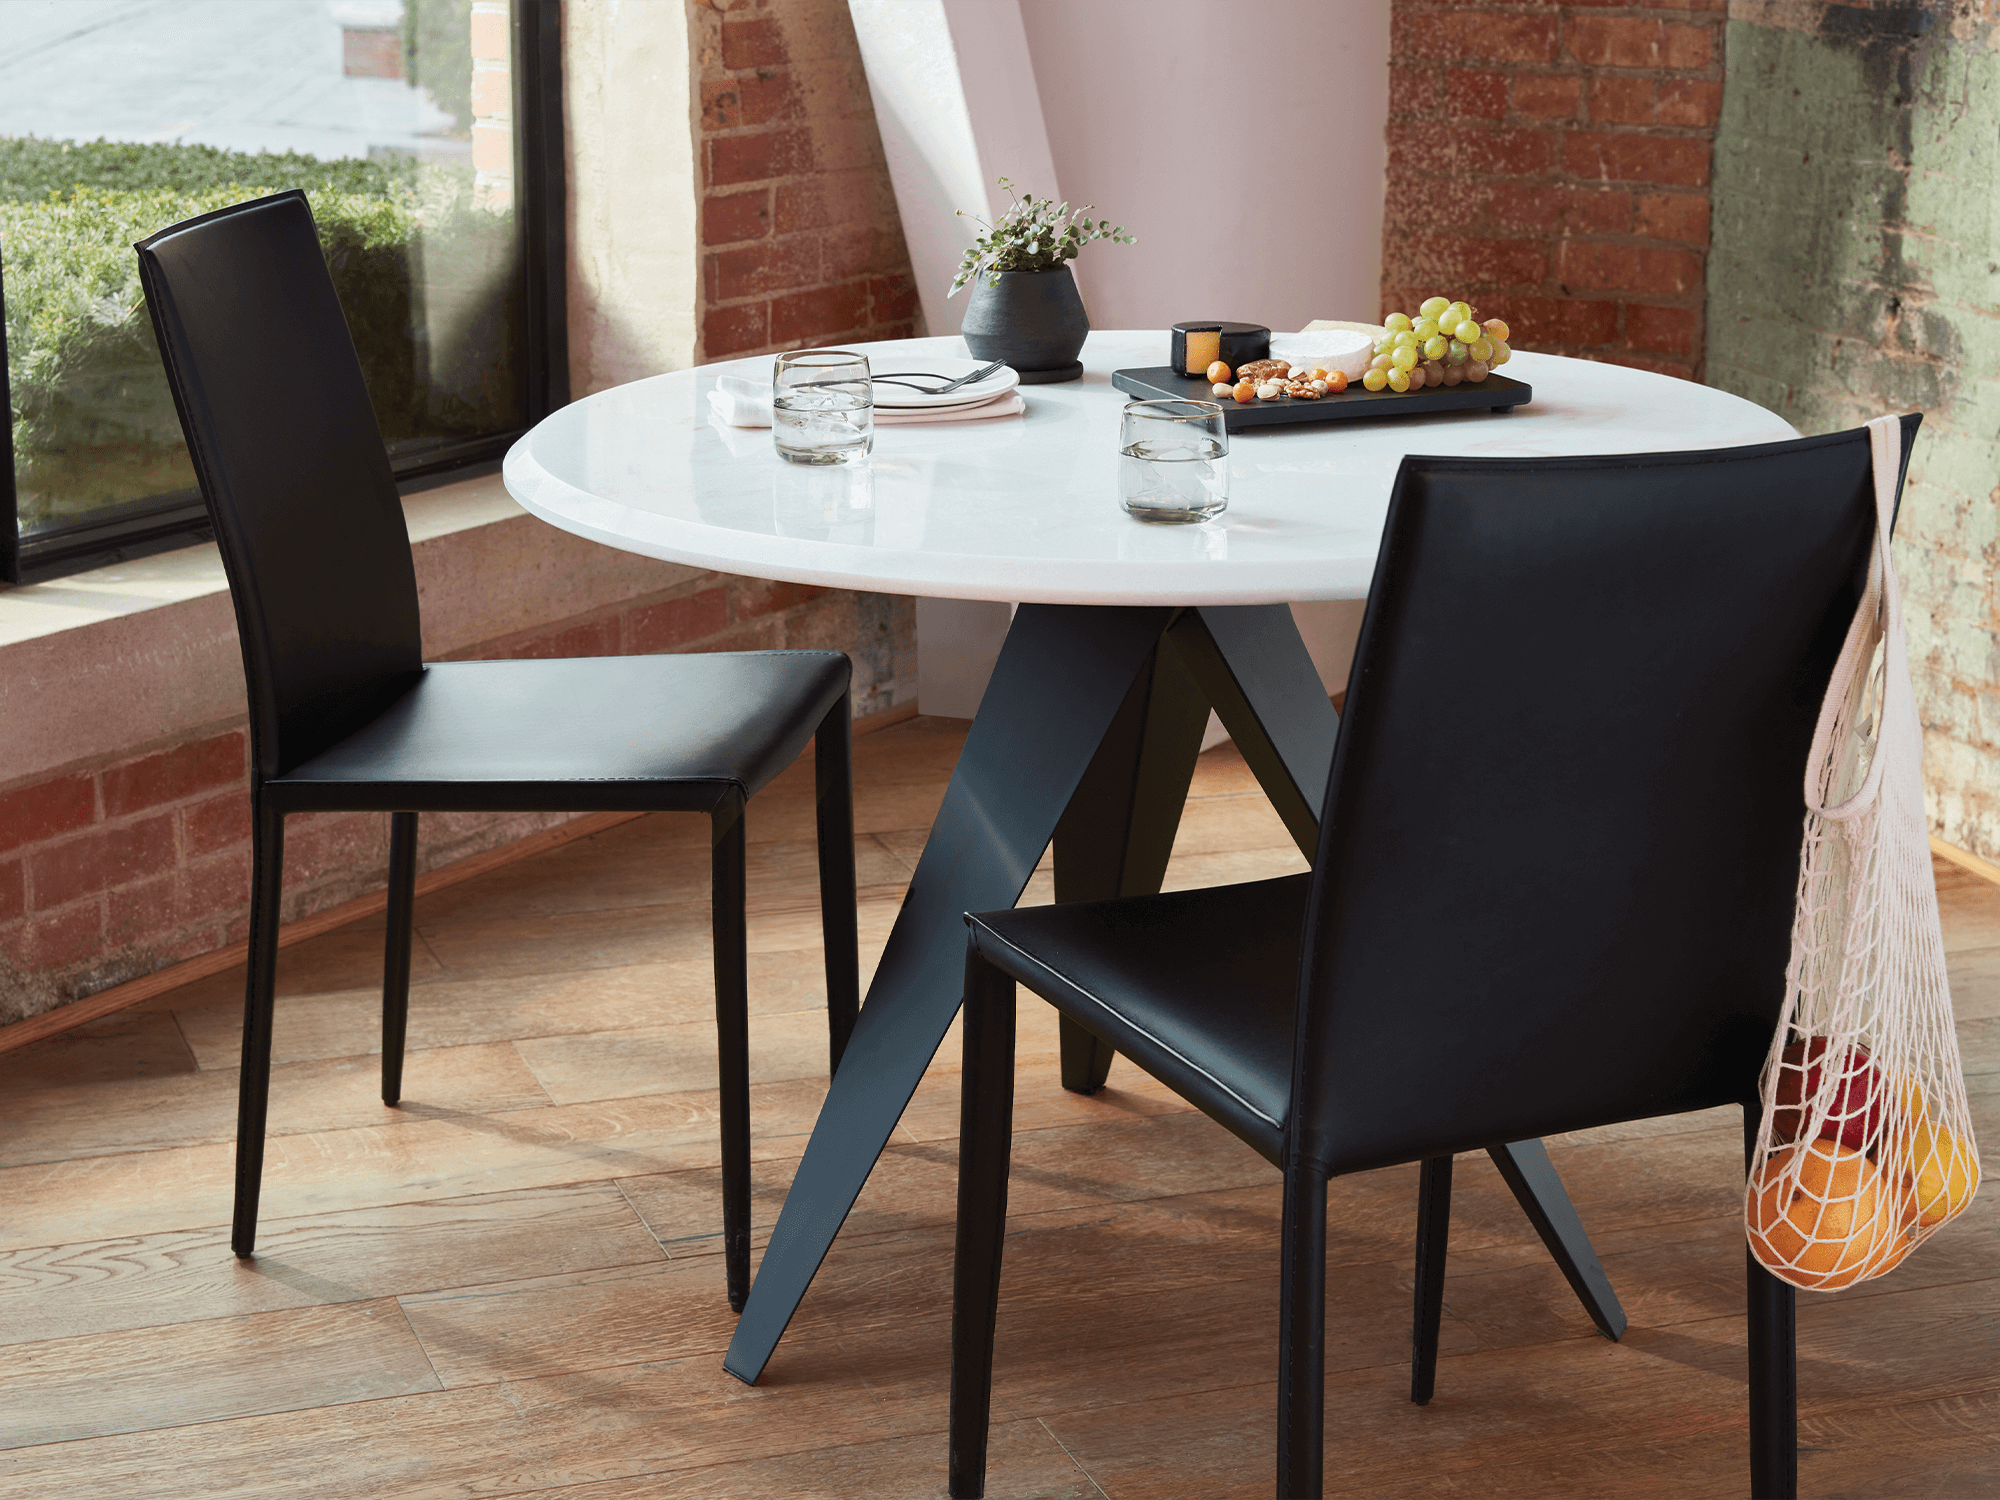 Mesa Round Dinette Table Contemporary, Eq3 Dining Room Tables